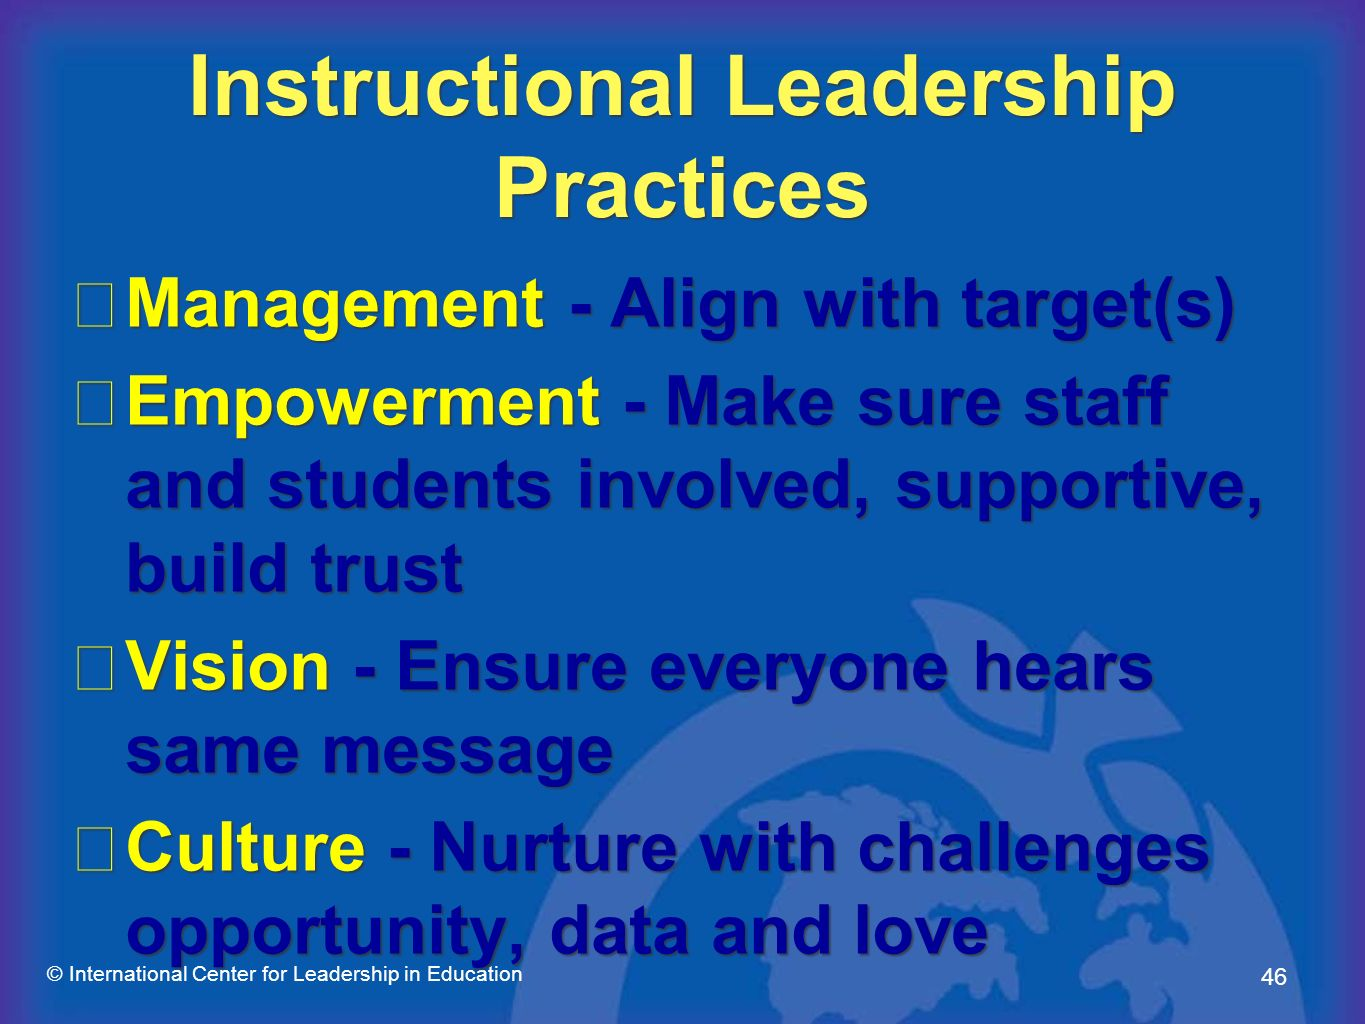 Instructional Leadership Practices